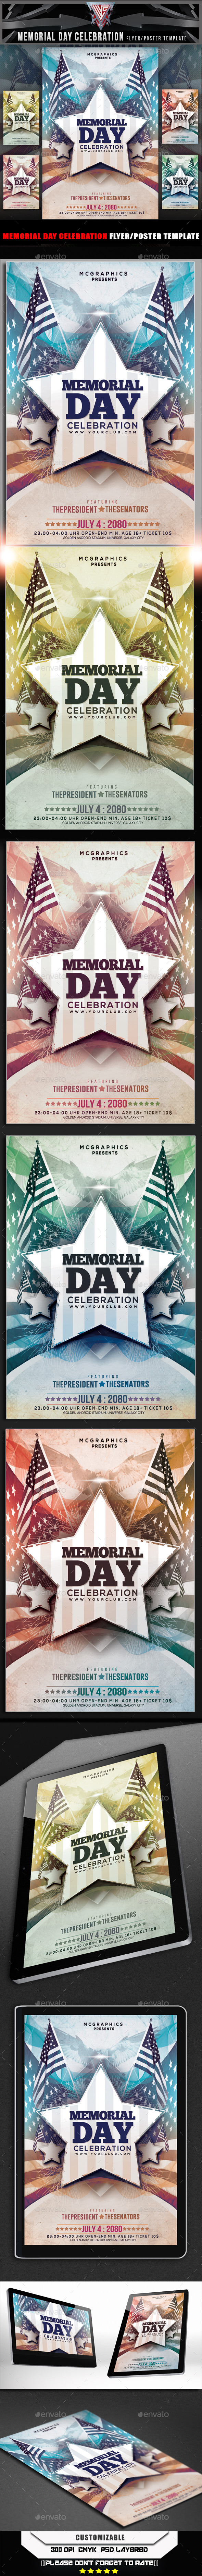 GraphicRiver Memorial Day Celebration Flyer Template 11554894